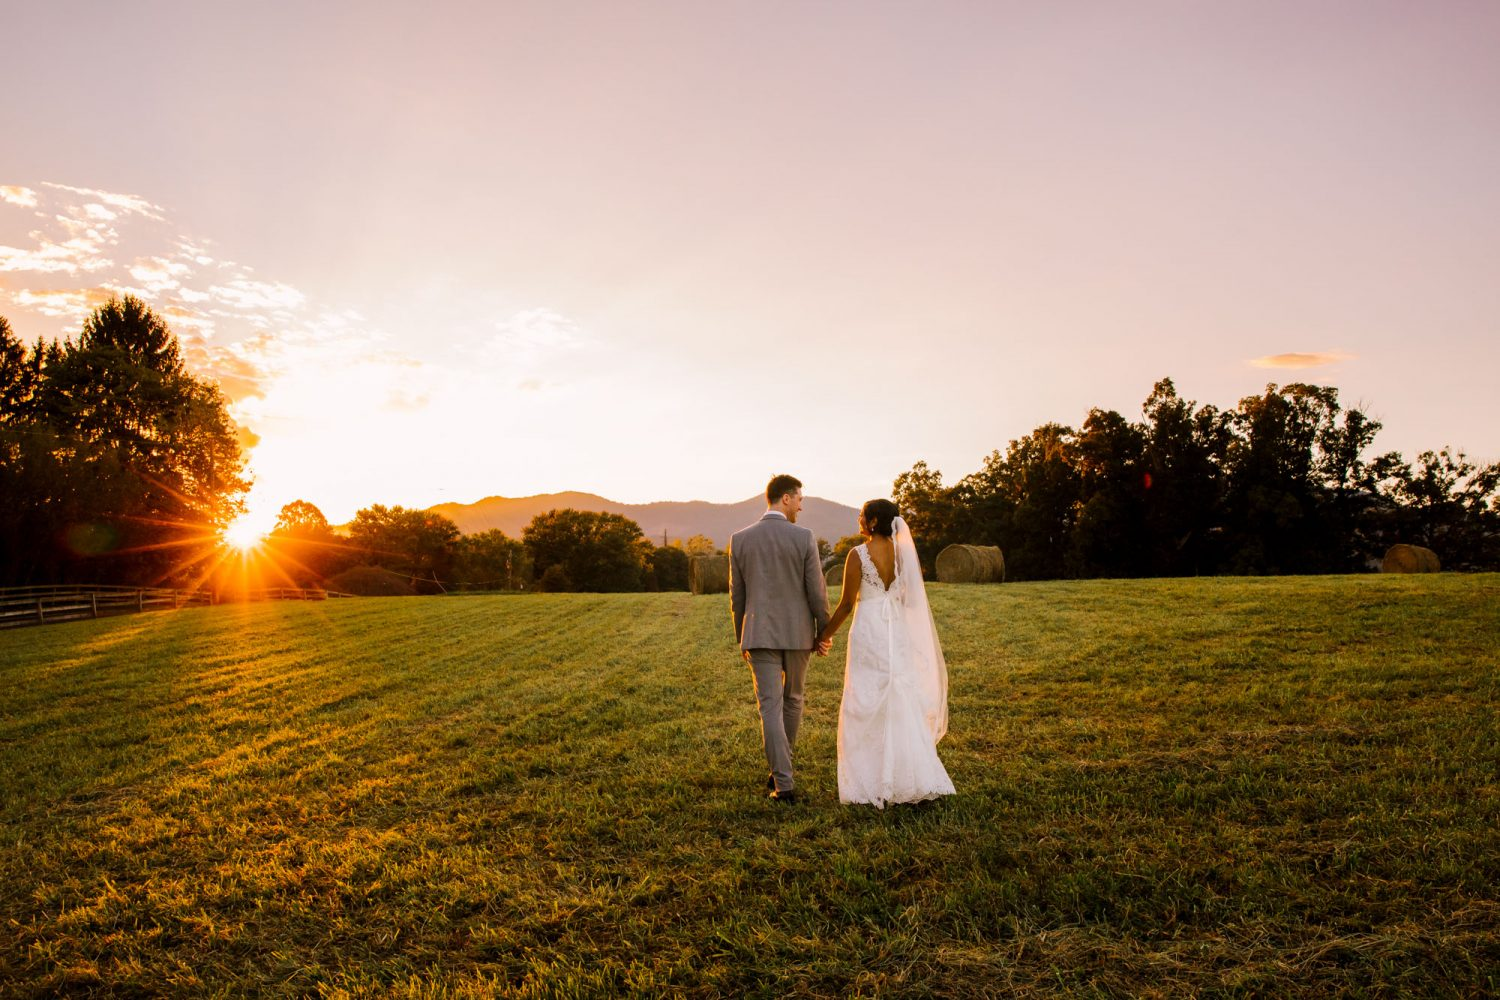 Waynesville NC Wedding Photography | Bride and Groom Sunset Portrait on the Farm